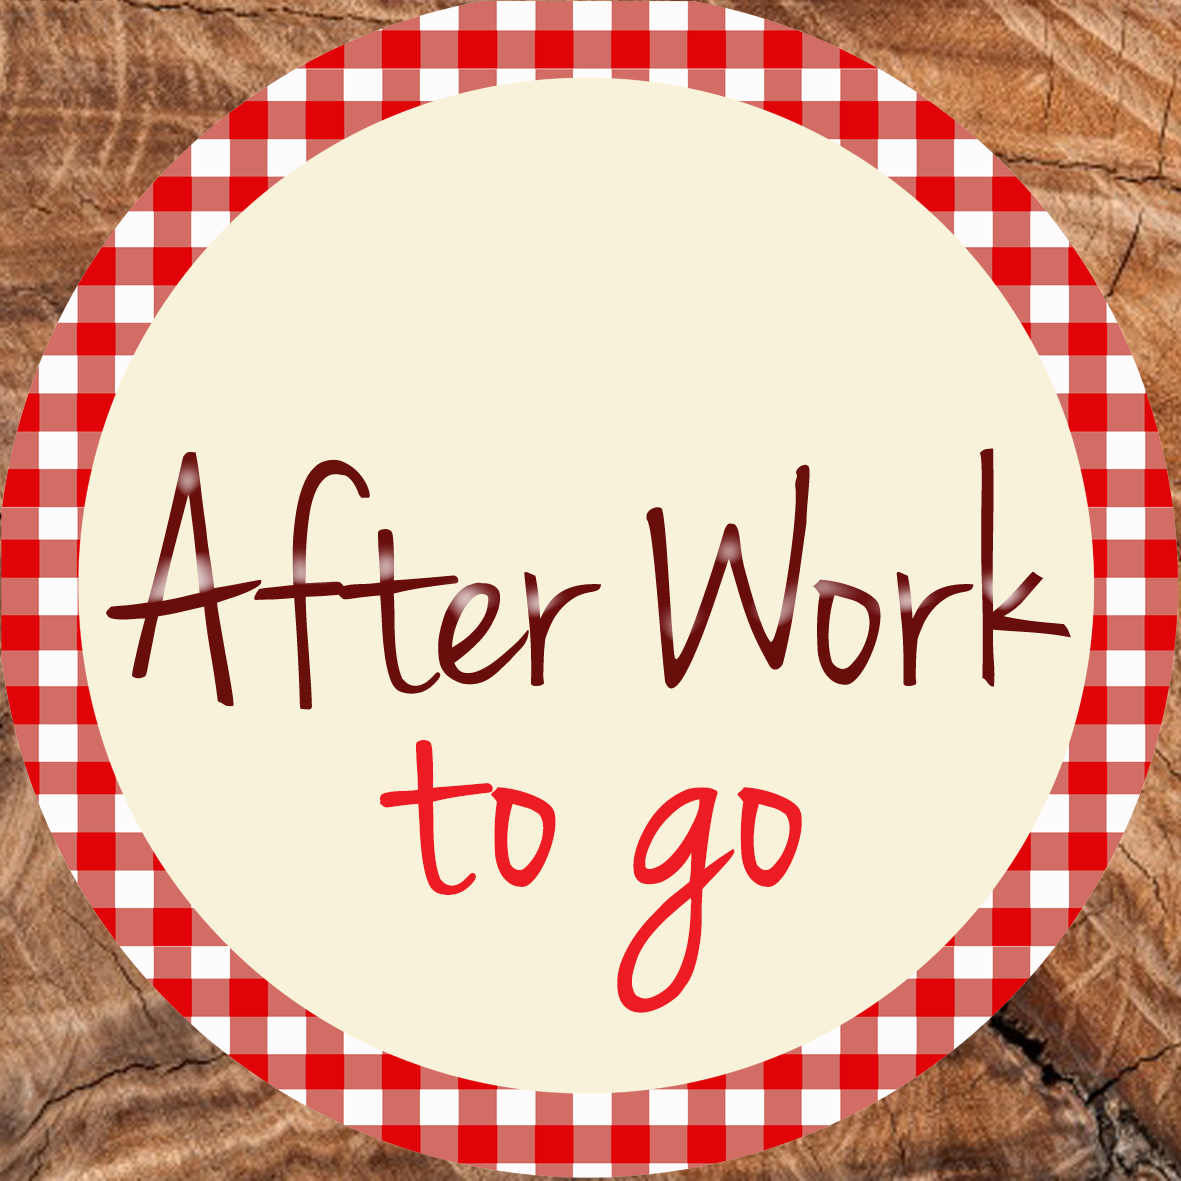 AFTER WORK TO GO 03.03. & 04.03.2021